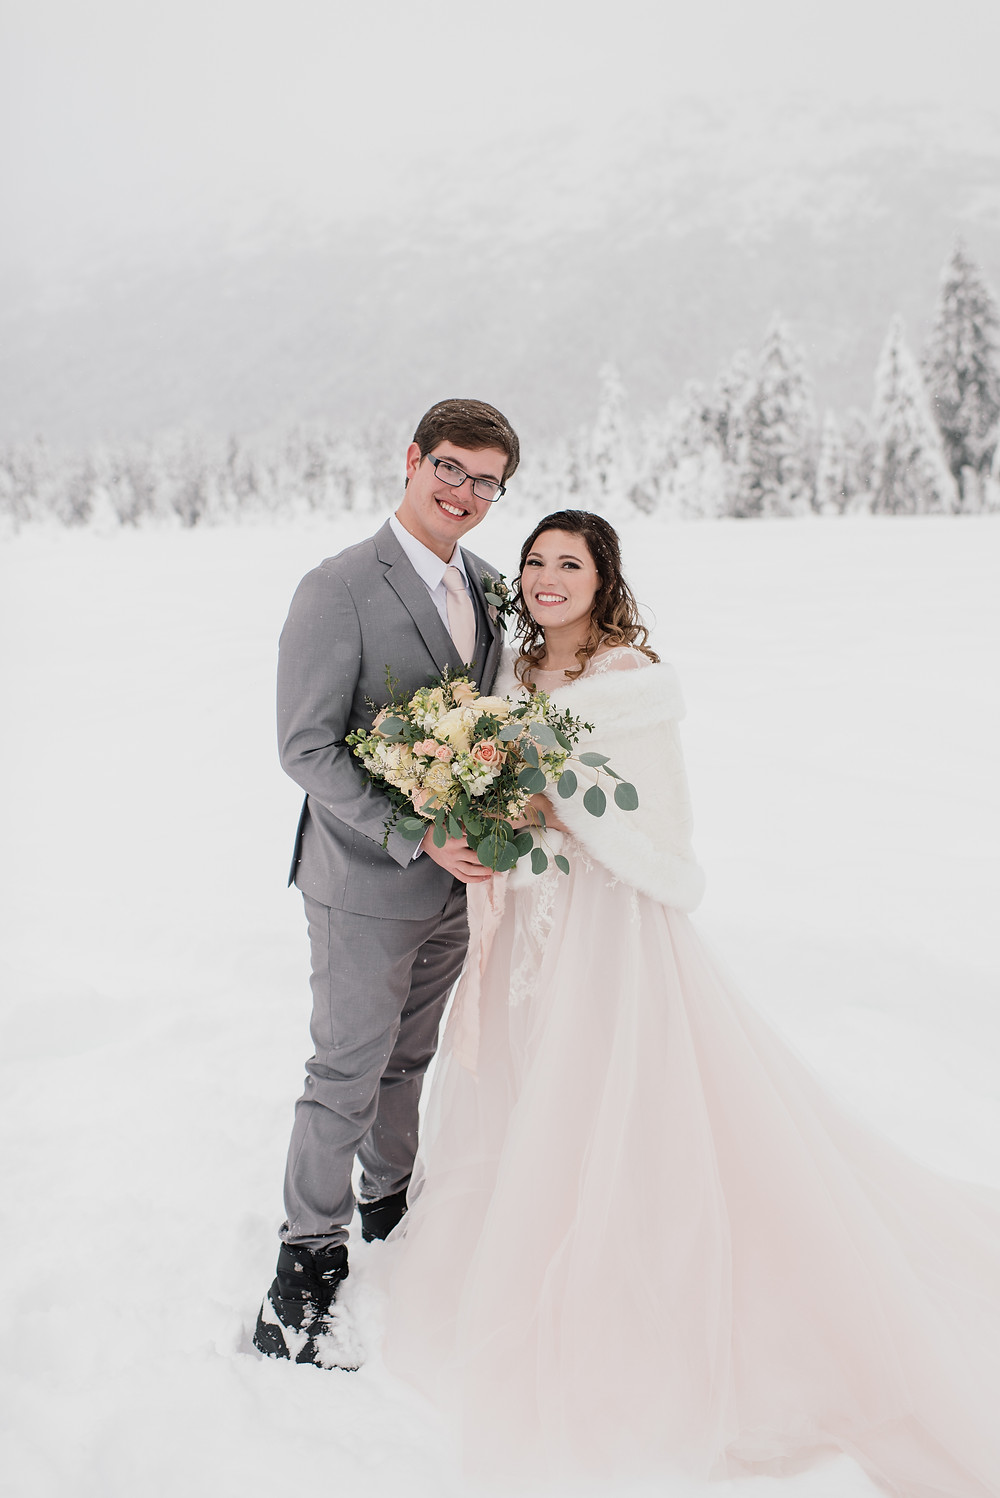 Adventure elopement in Alaska, stylish couple with vintage flair